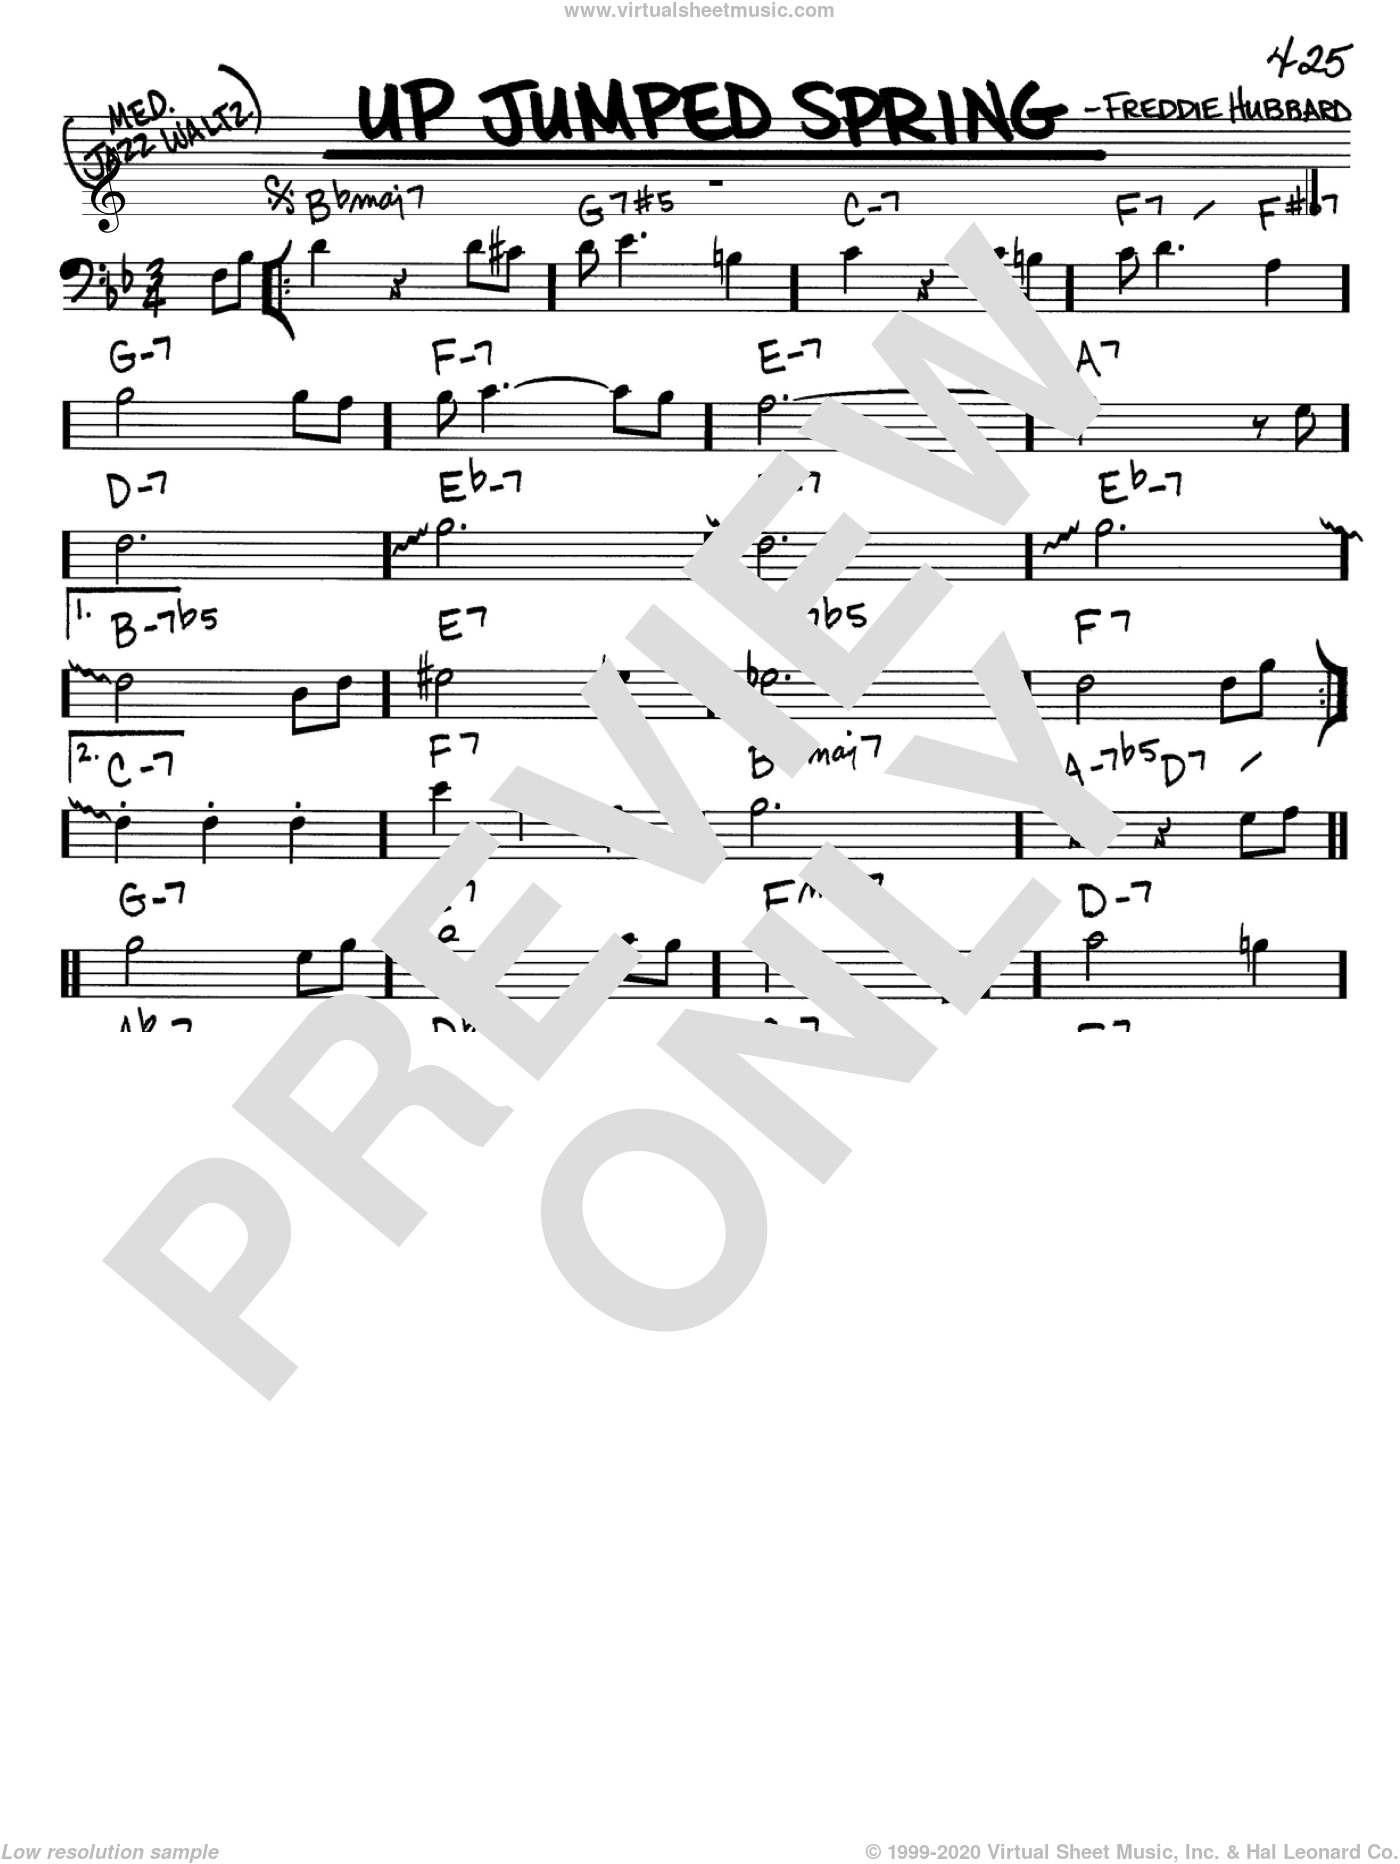 Up Jumped Spring sheet music for voice and other instruments (Bass Clef ) by Freddie Hubbard